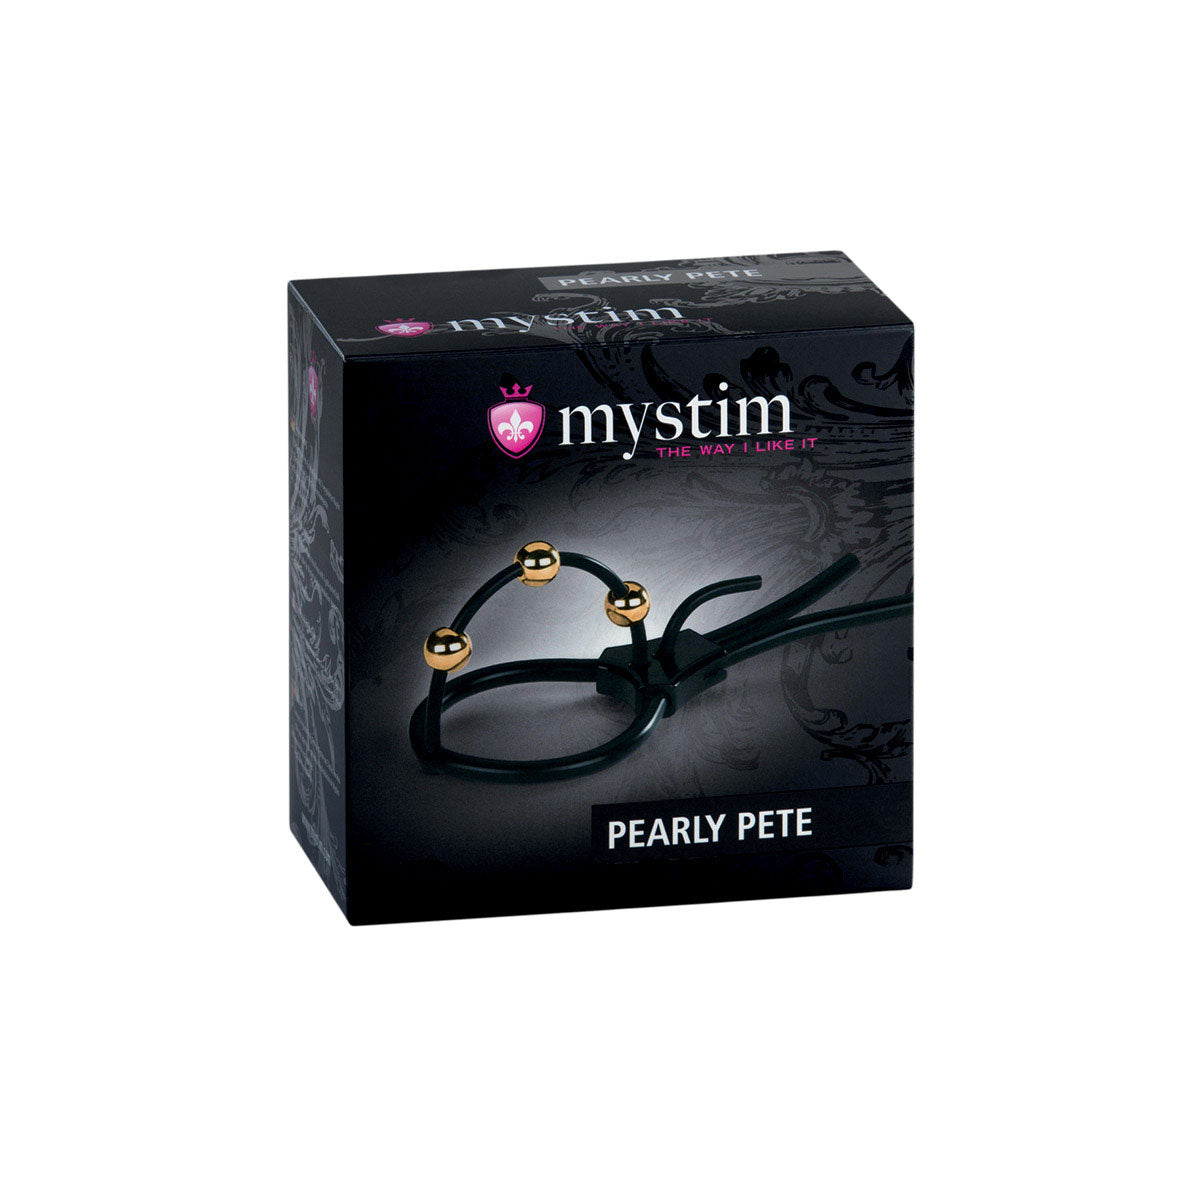 Mystim Pearly Pete - Corona Strap with Golden Balls [A00422]